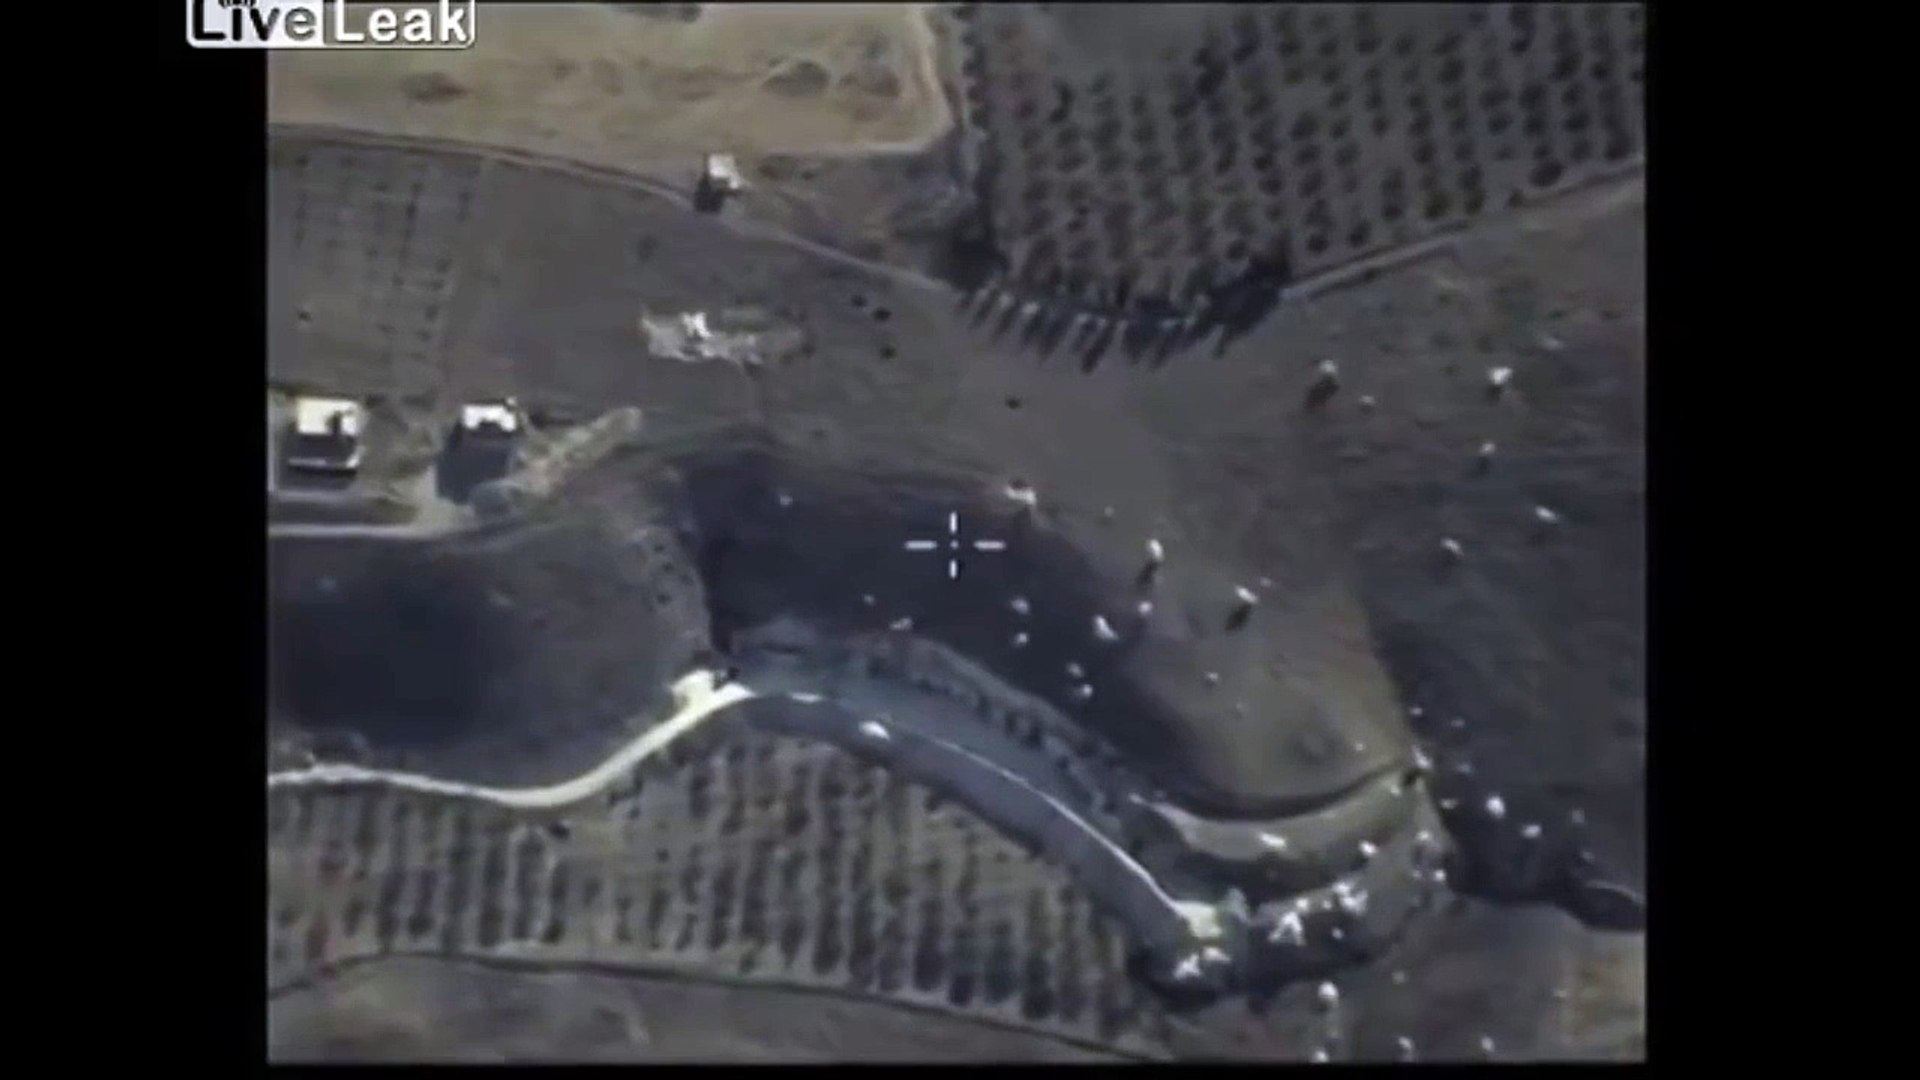 LiveLeak - Drone footage from Russian air strikes in Syria